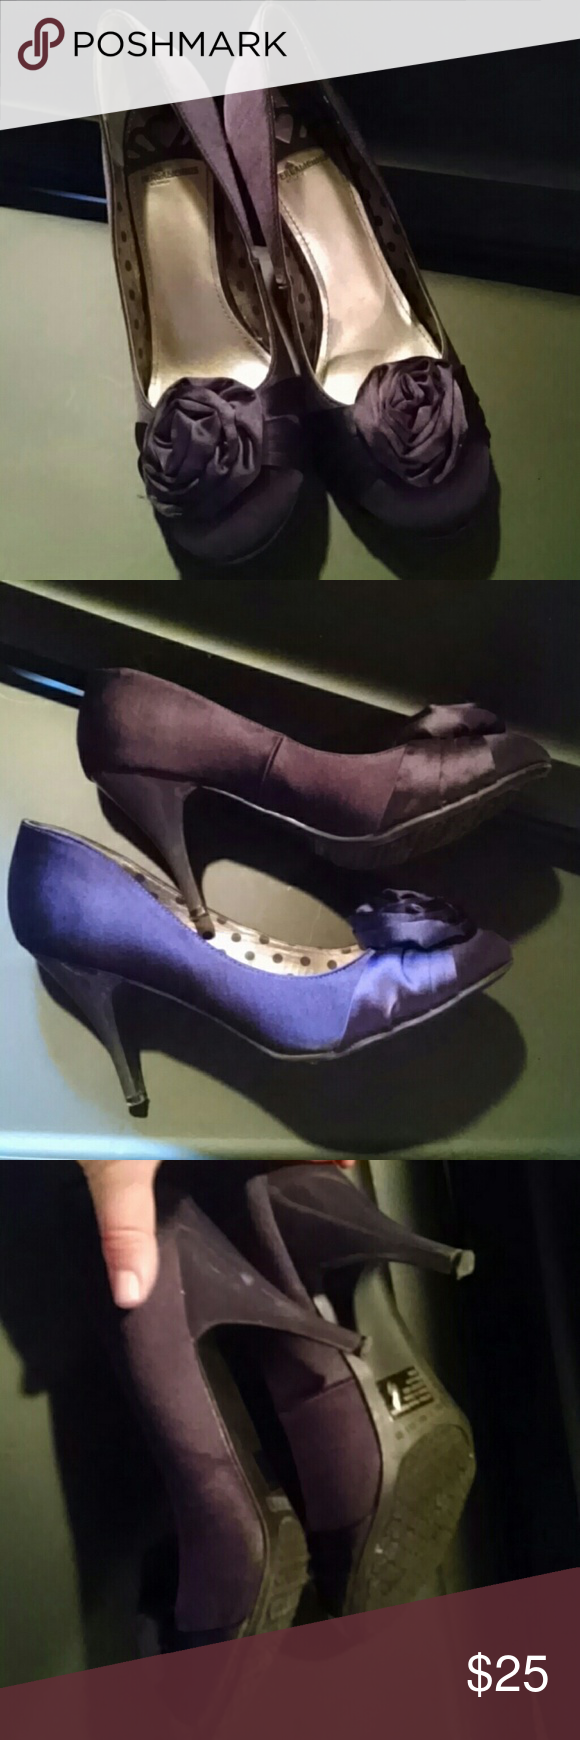 Very stunning heels Purple! Size 10m Ladies they are cute deep purple heels....fergie does well. Flowers and heels. Wore to a shower and looked amazing with a black dress! Shoes Heels